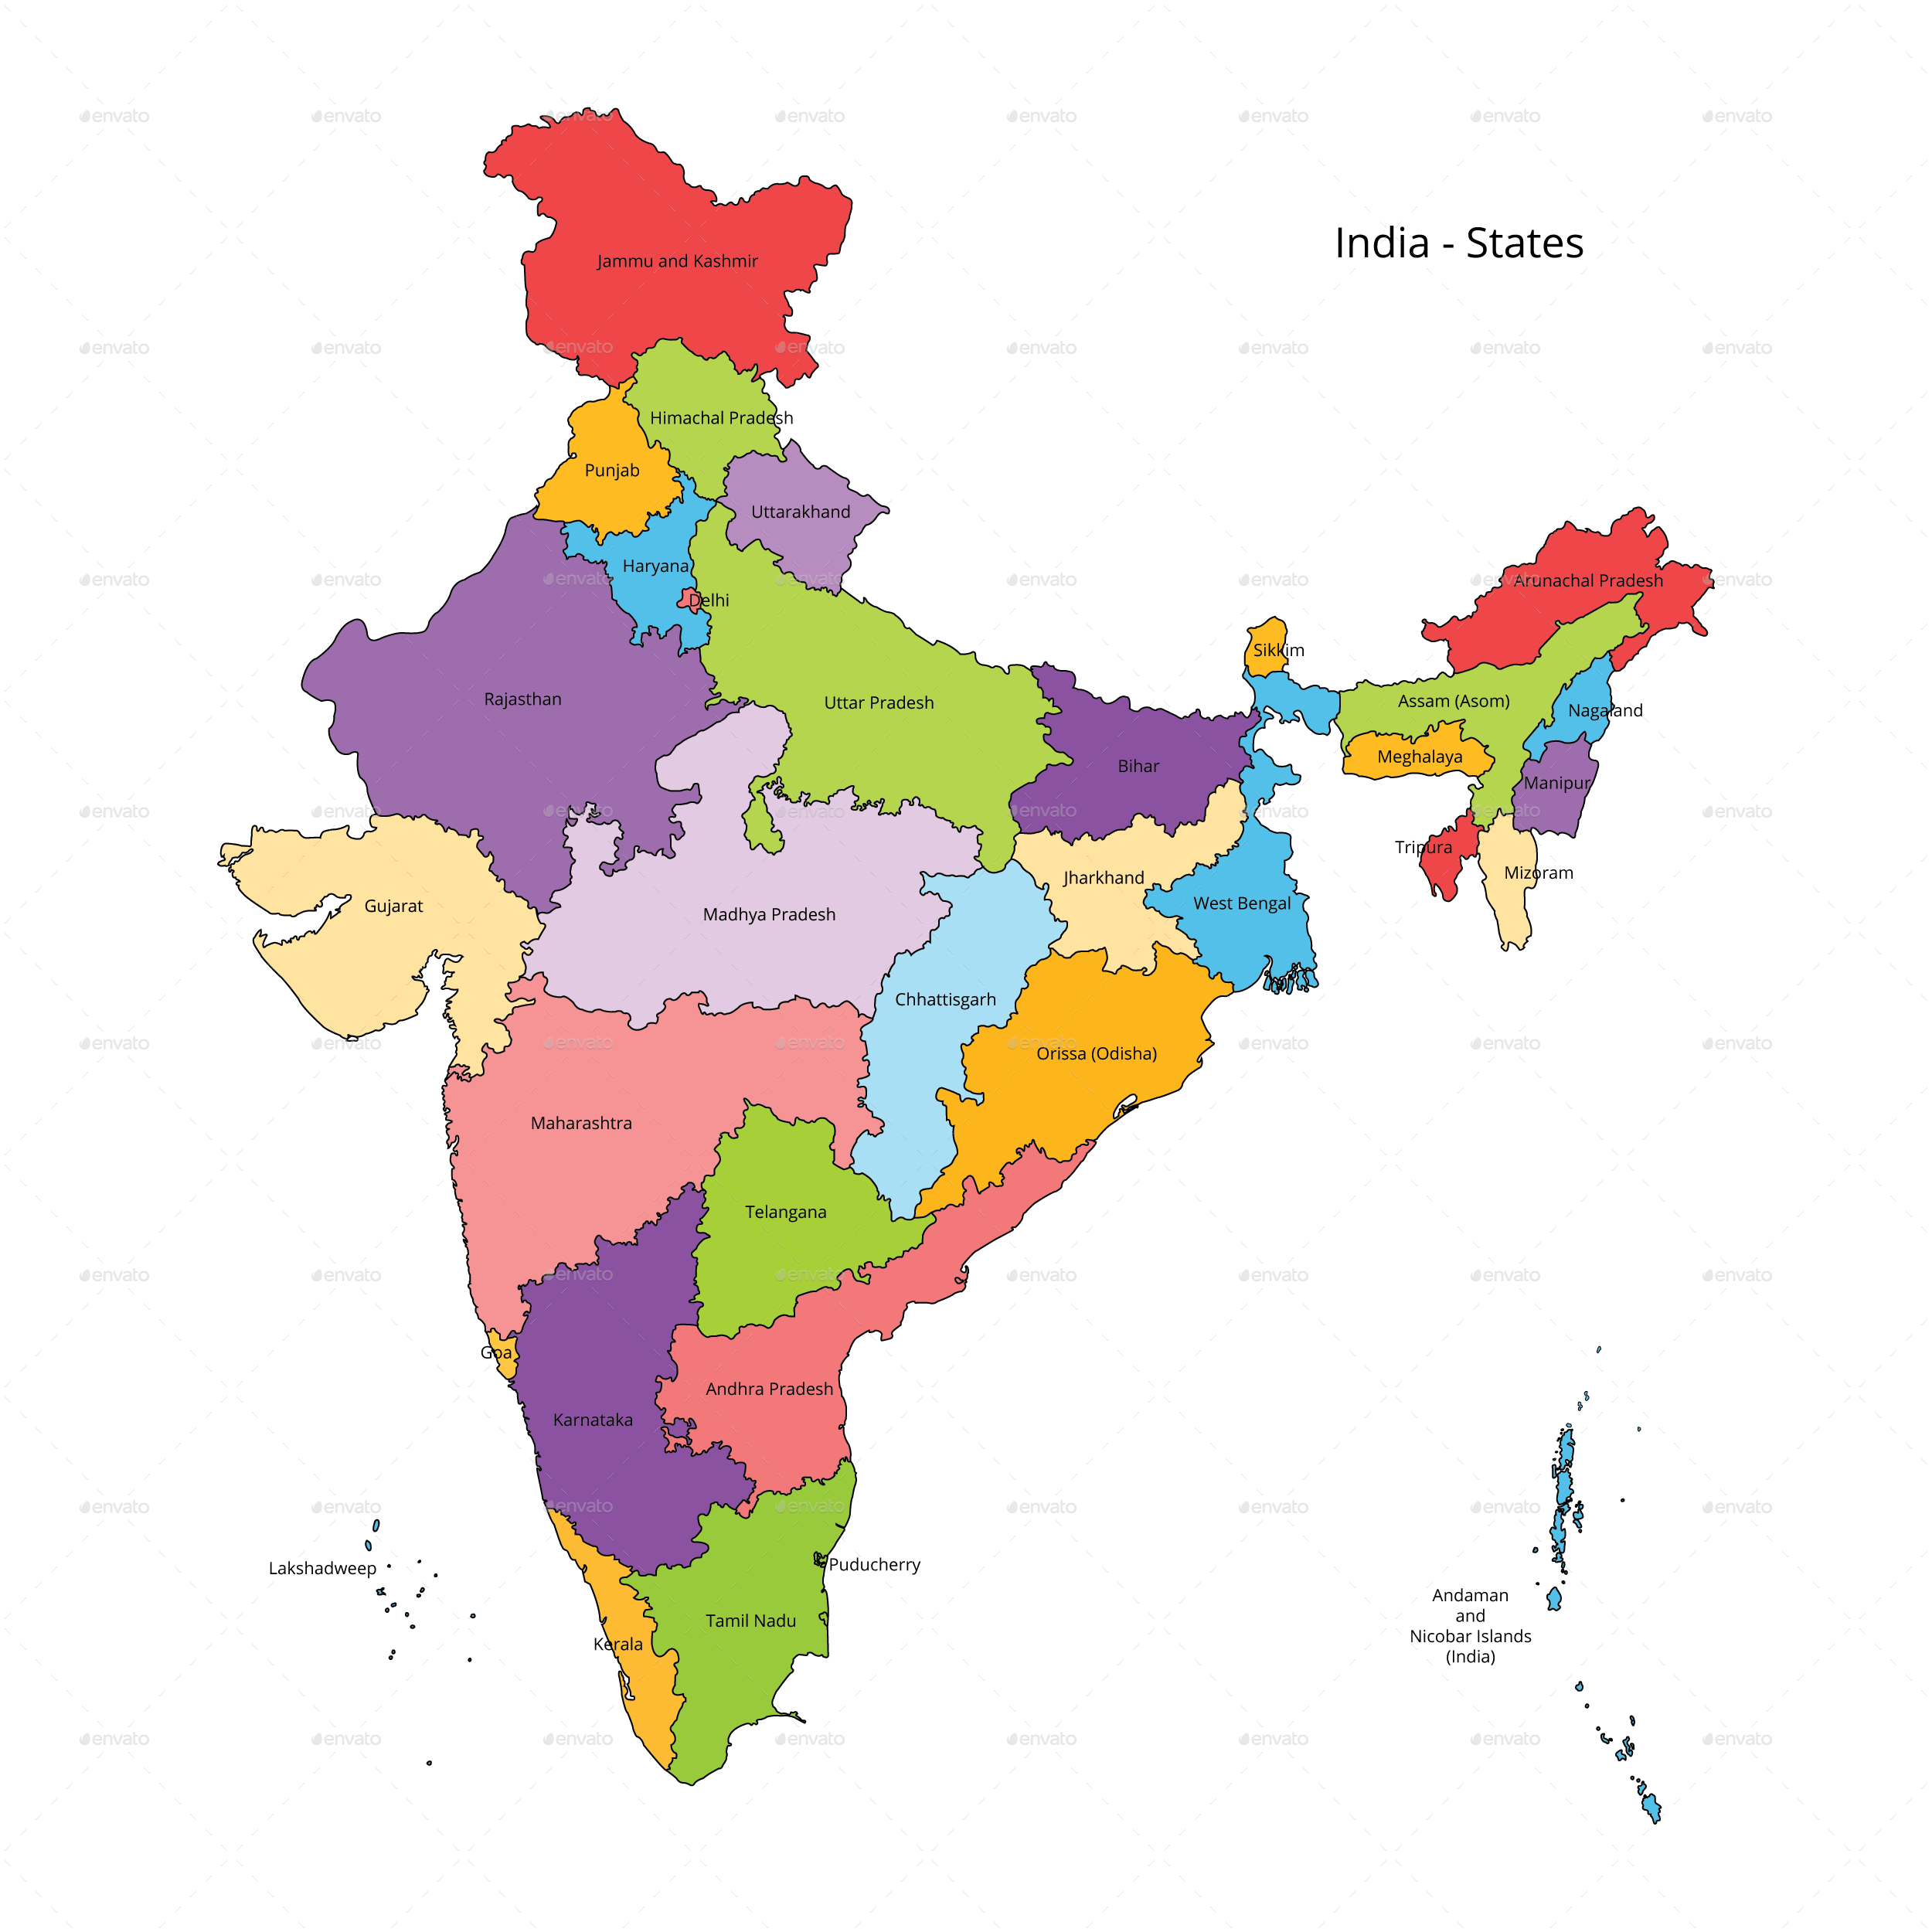 state of india map India States Map And Outline By Vzan2012 Graphicriver state of india map